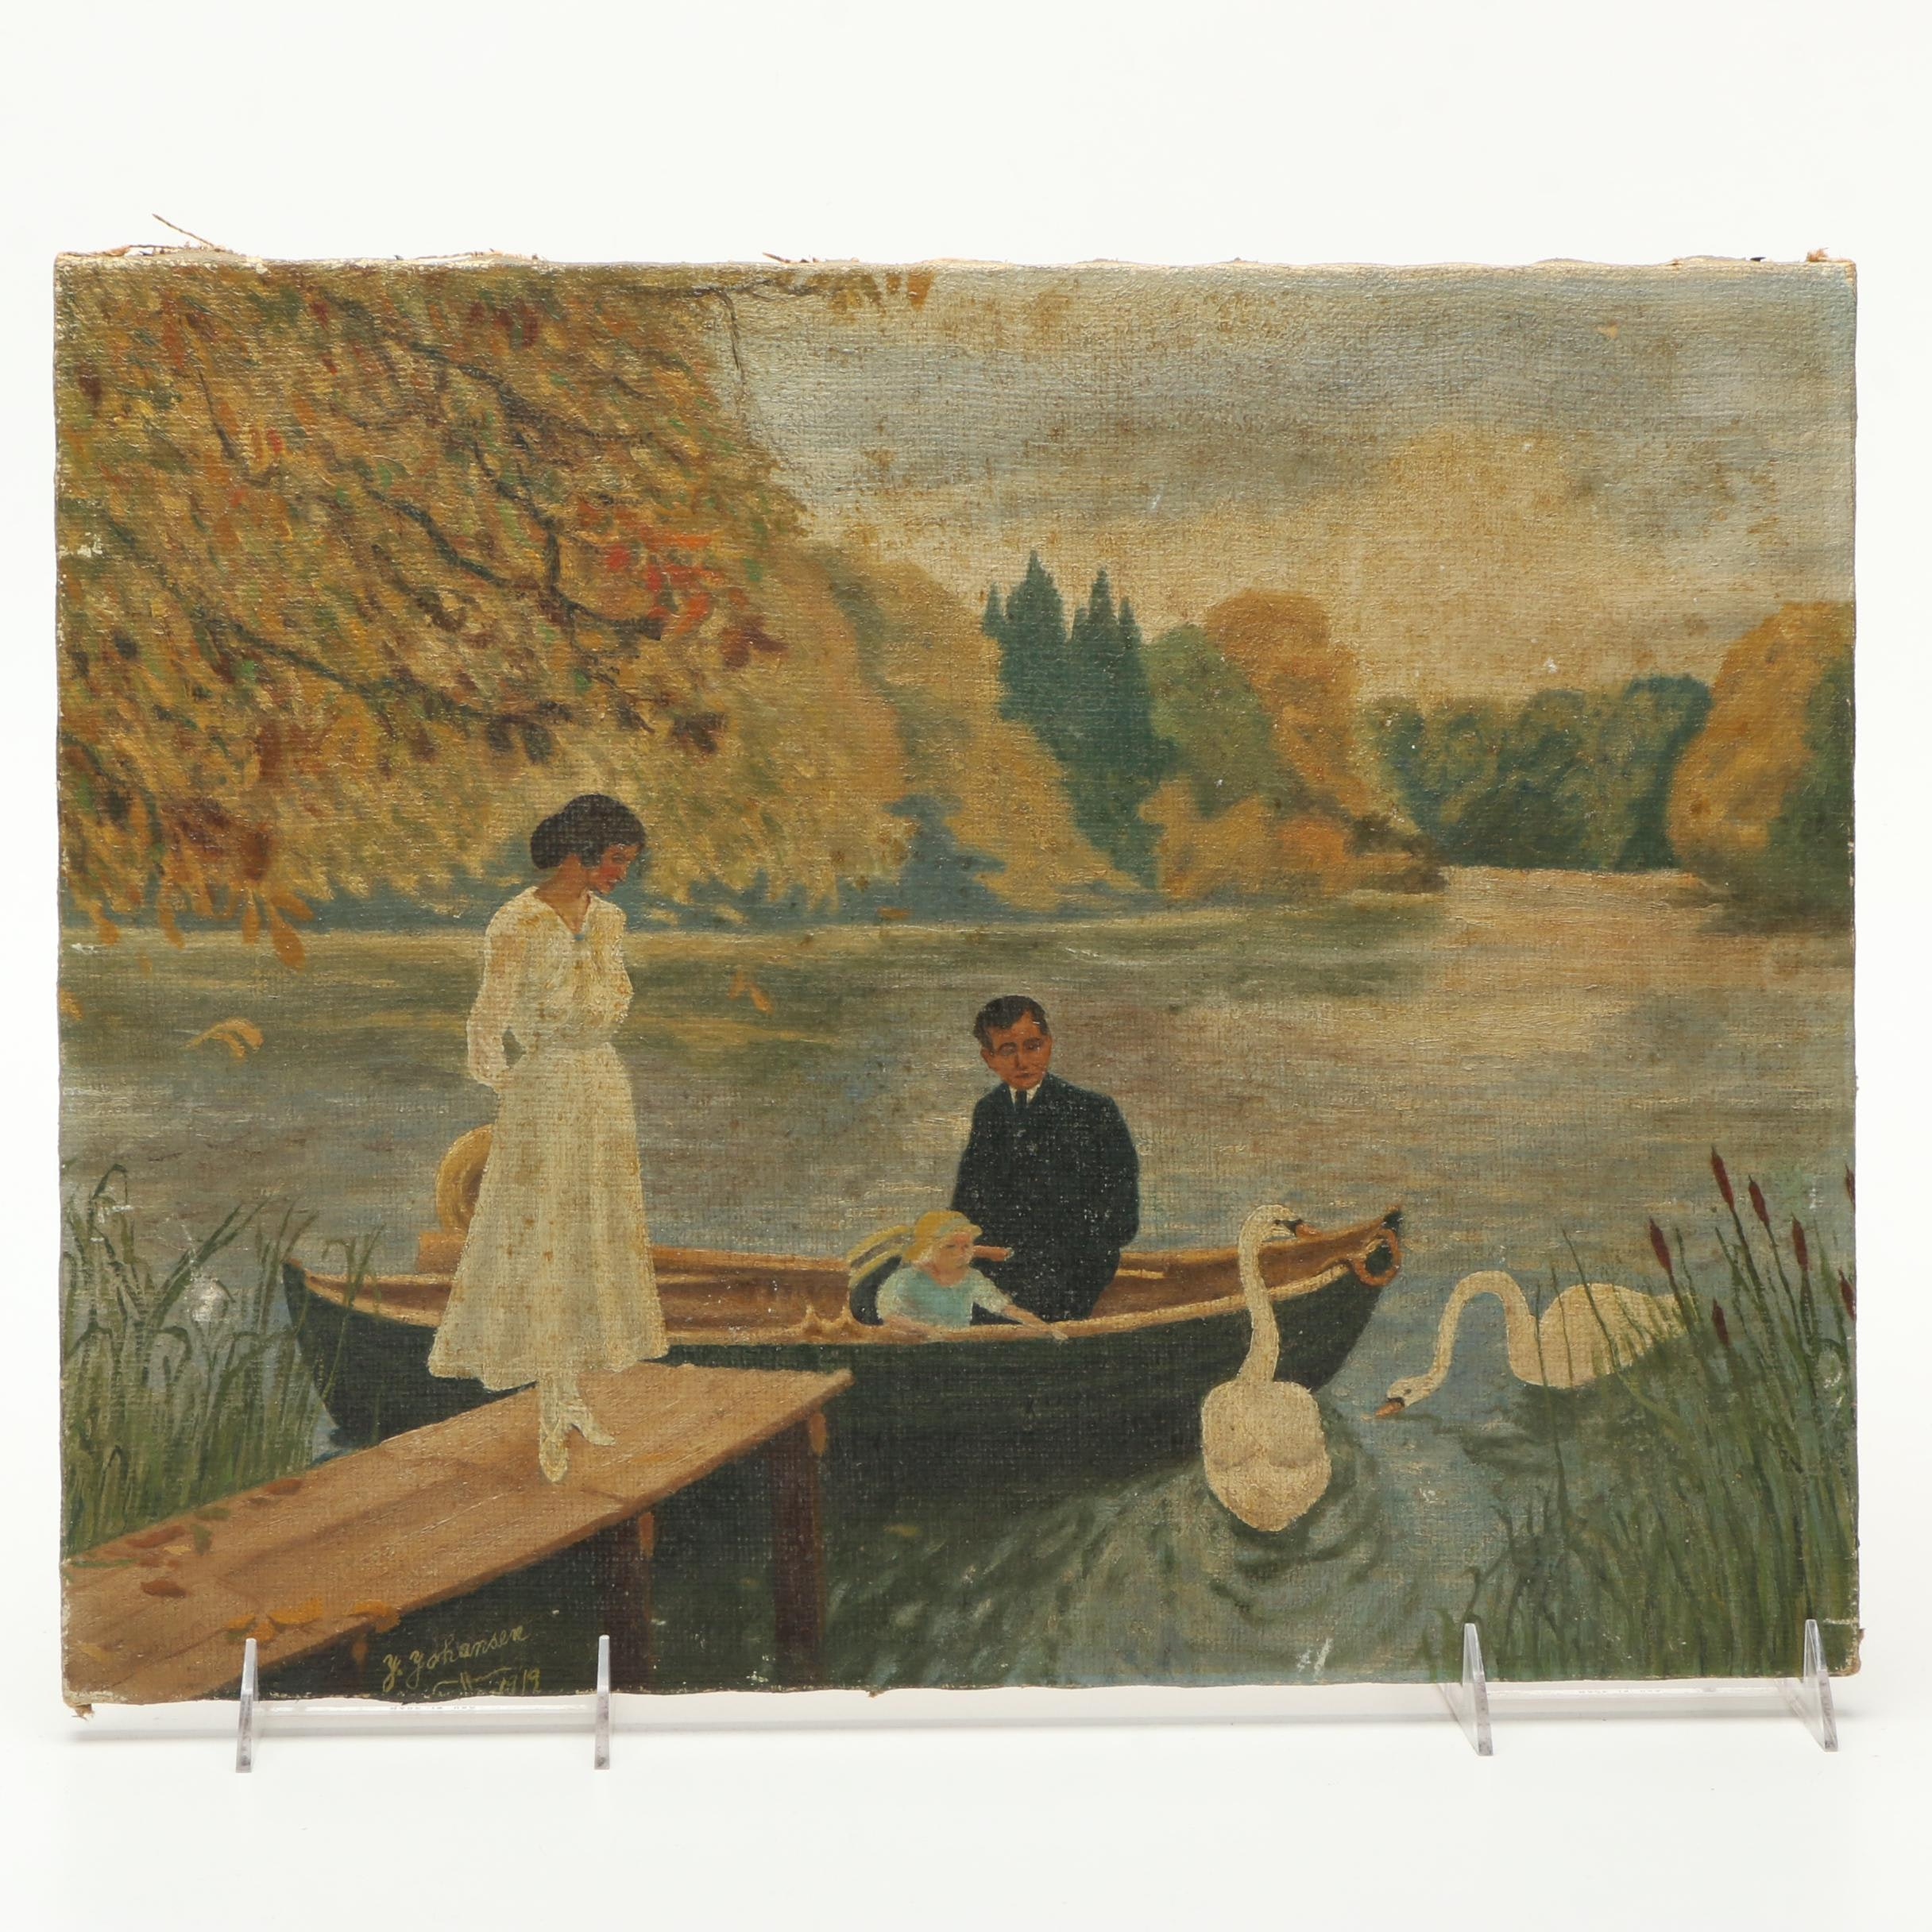 Manner of J. Johansen 1919 Oil on Canvas of Family on Lake with Swans